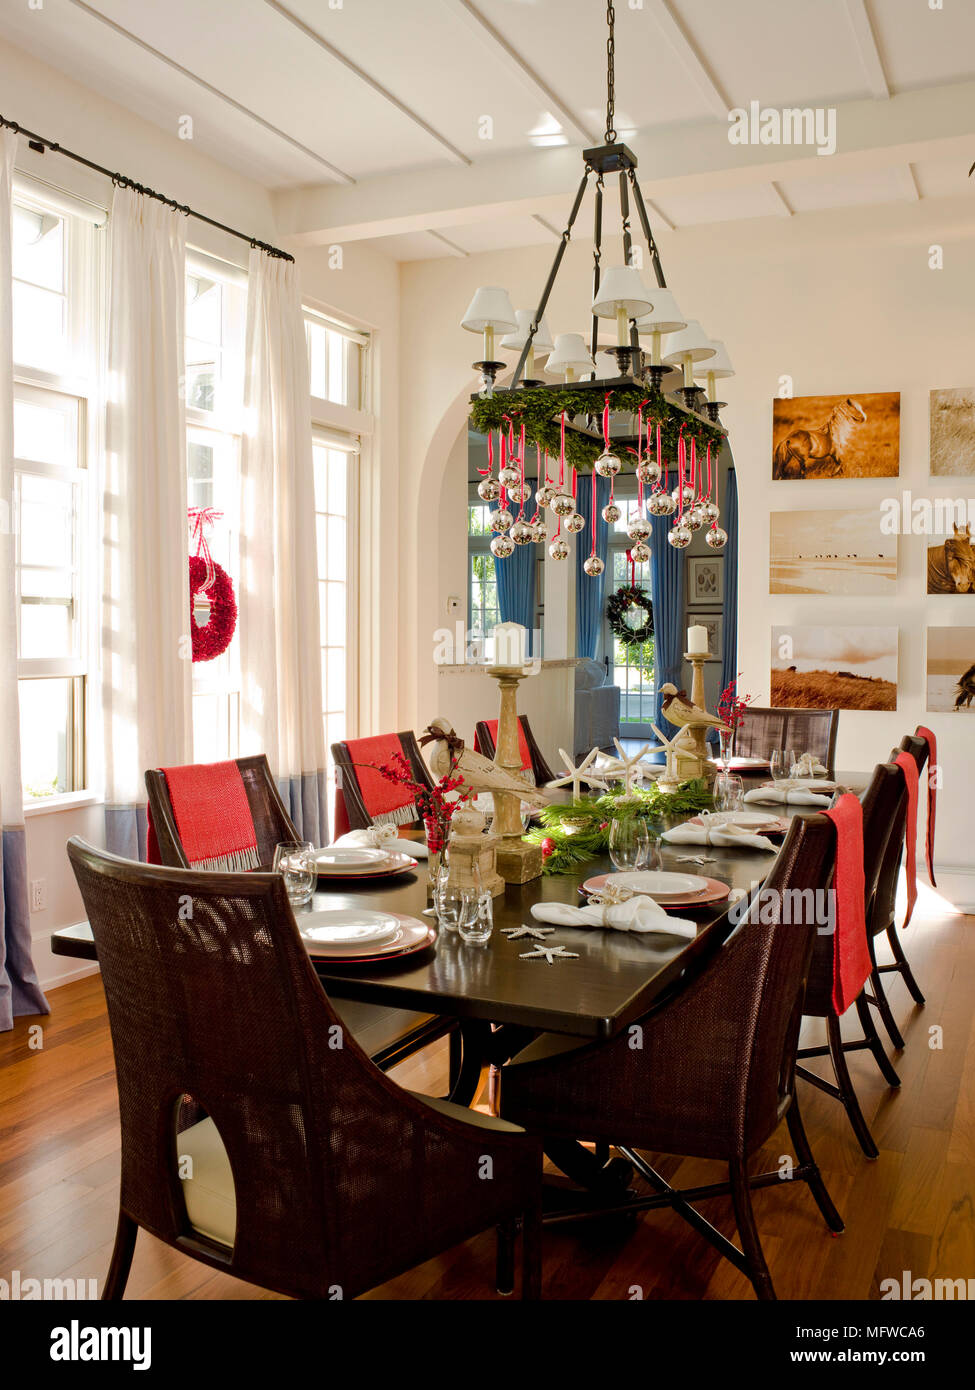 Christmas Decorations Hanging From Chandelier Above Table Laid For Lunch In Country  Style Dining Room